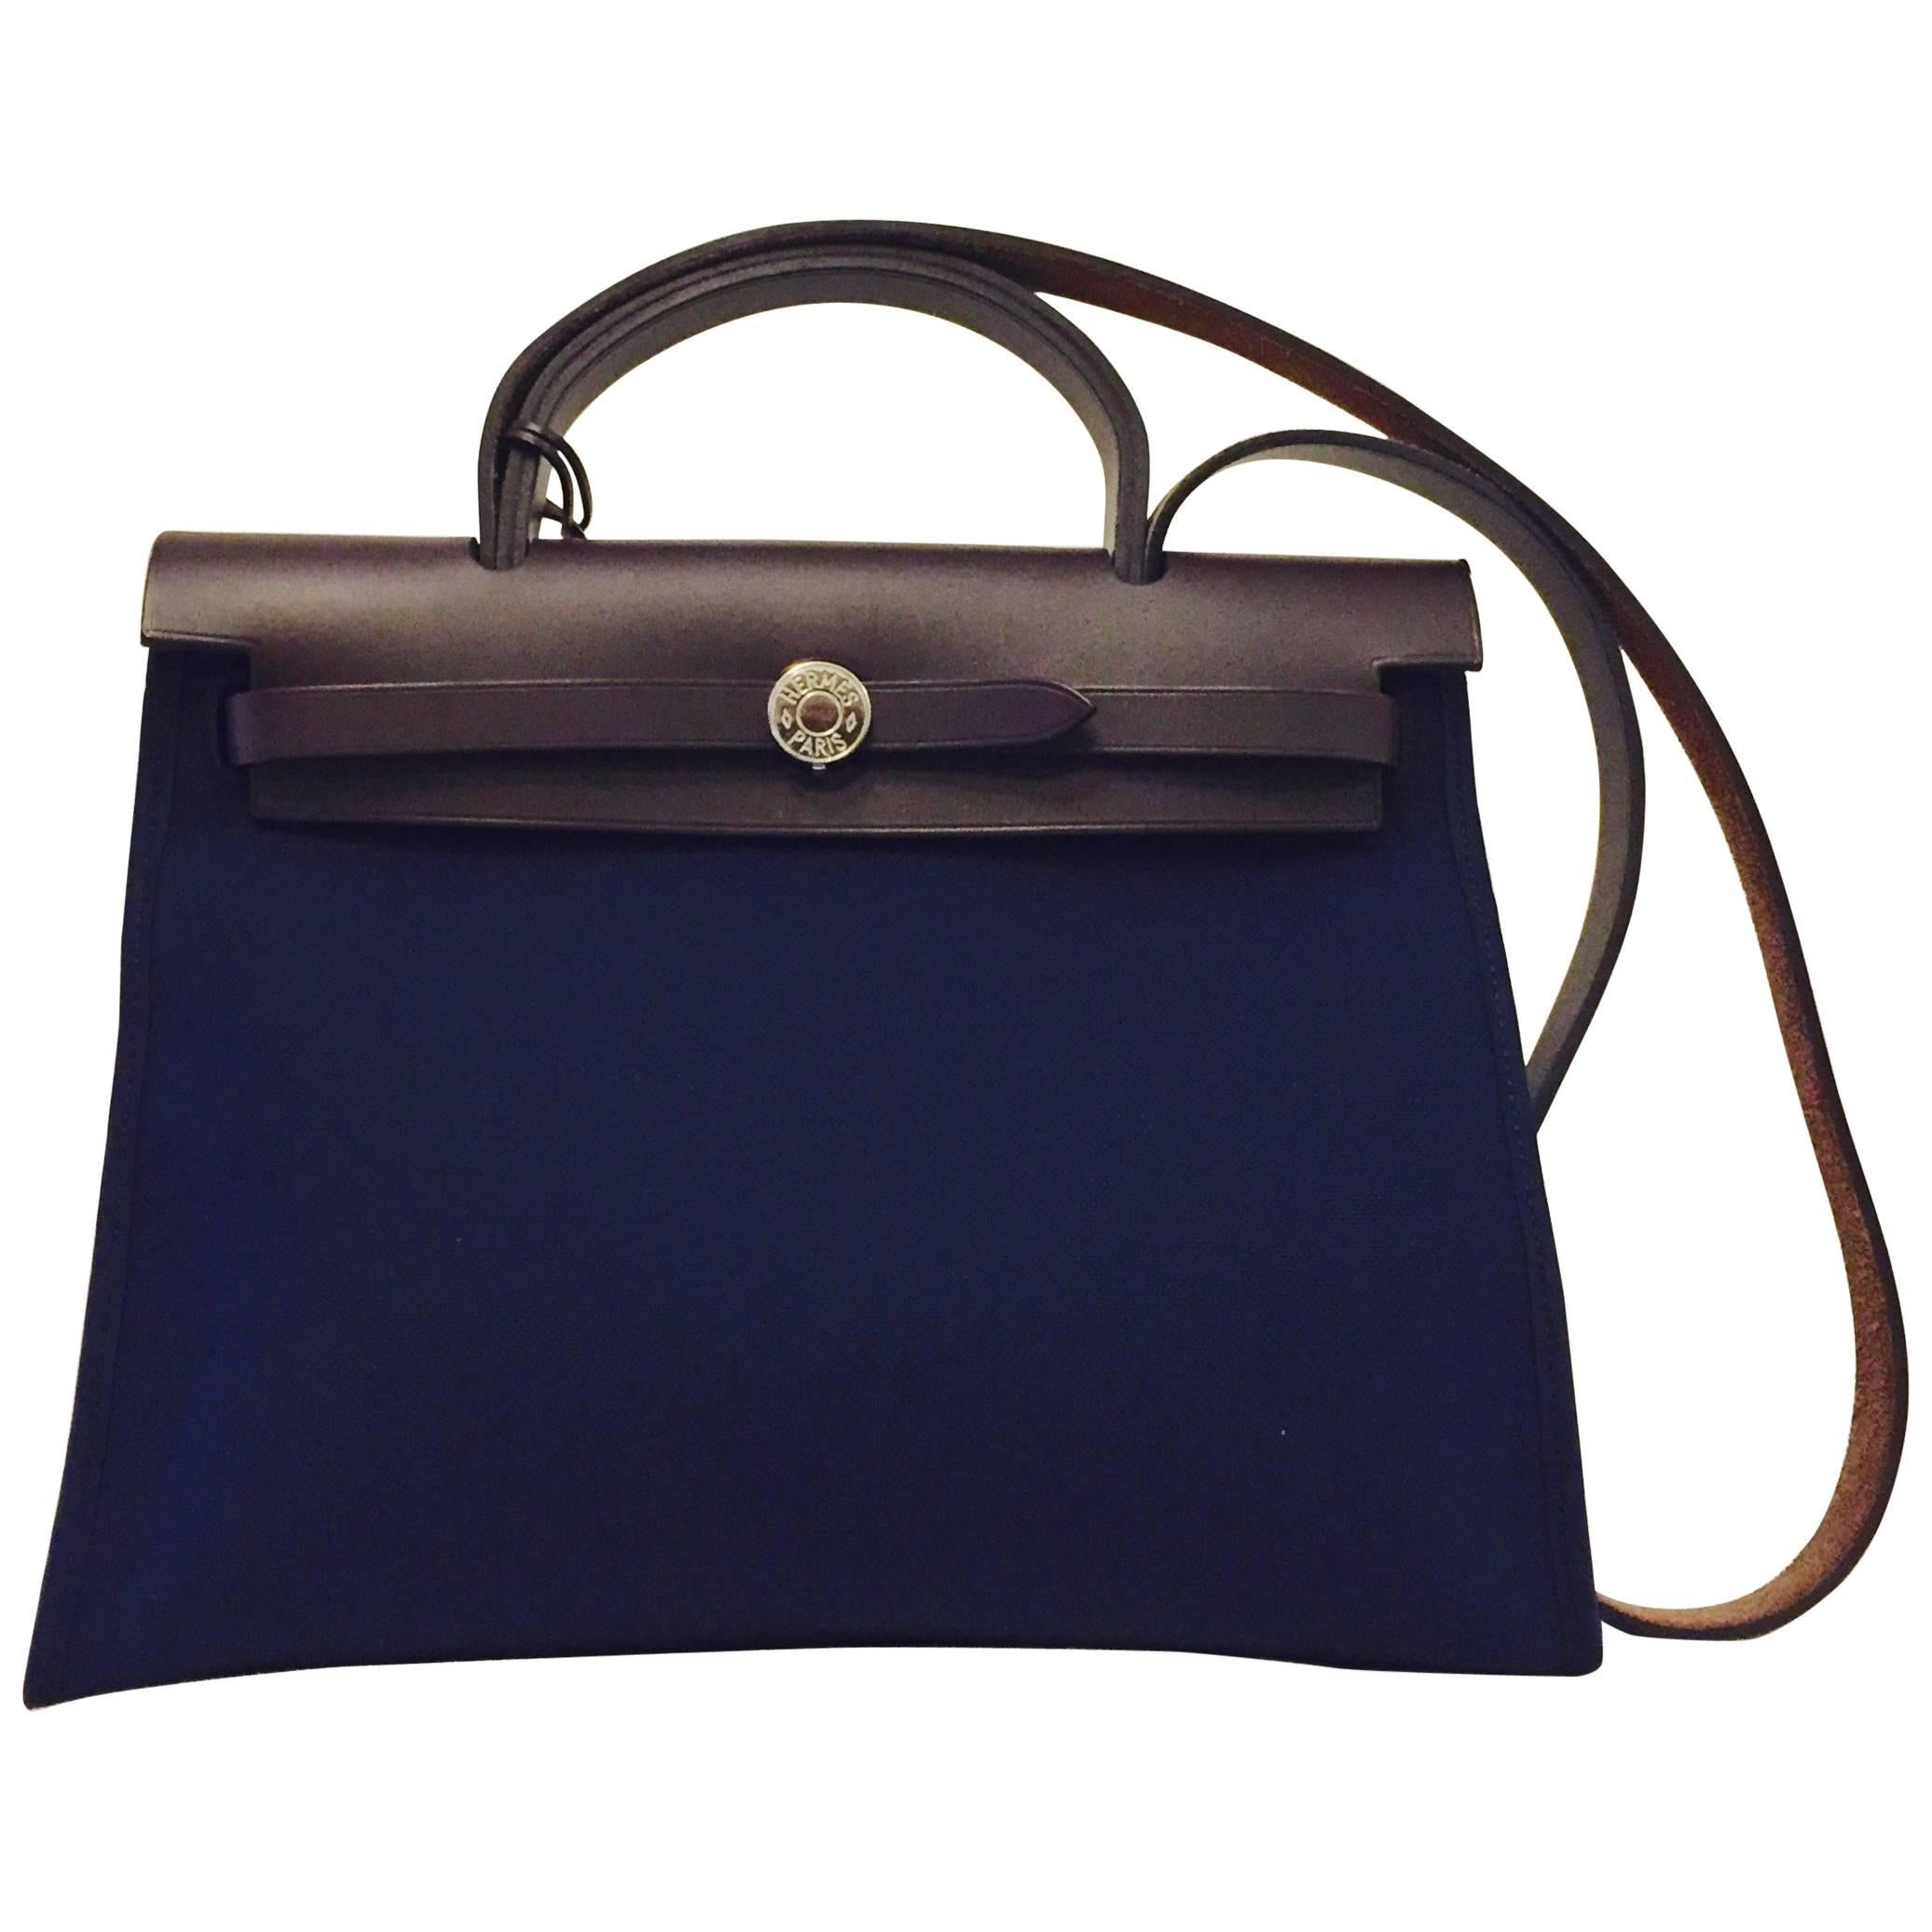 a61814ae8317 ... free shipping hermès toile vache hunter herbag in blue with brown  leather trim pm 31 phw ...